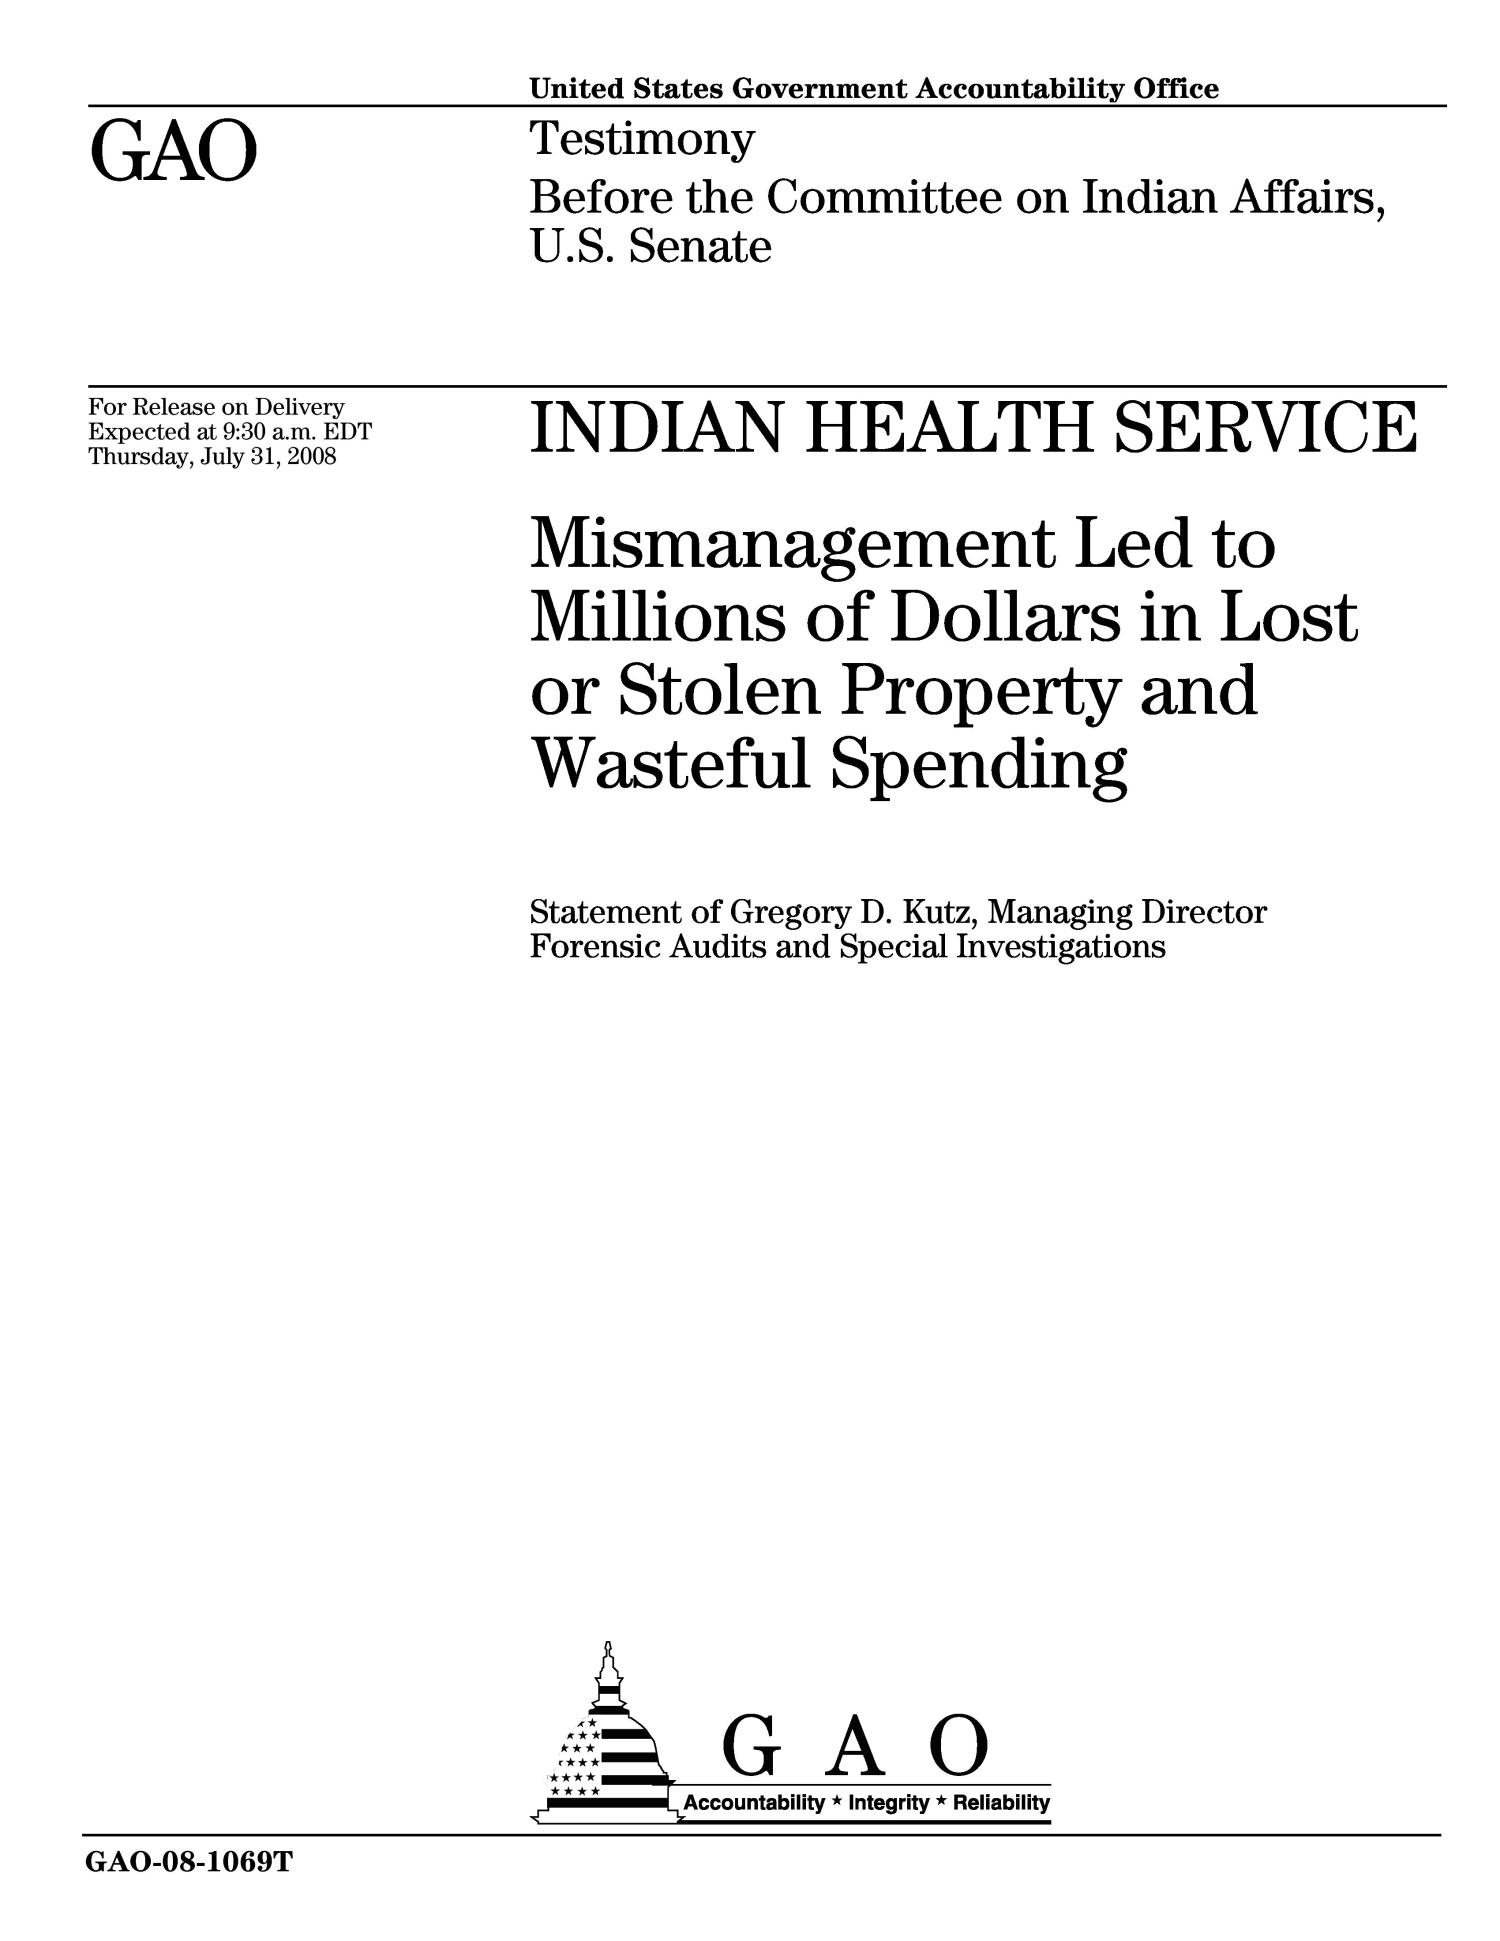 Indian Health Service: Mismanagement Led to Millions of Dollars in Lost or Stolen Property and Wasteful Spending                                                                                                      [Sequence #]: 1 of 14